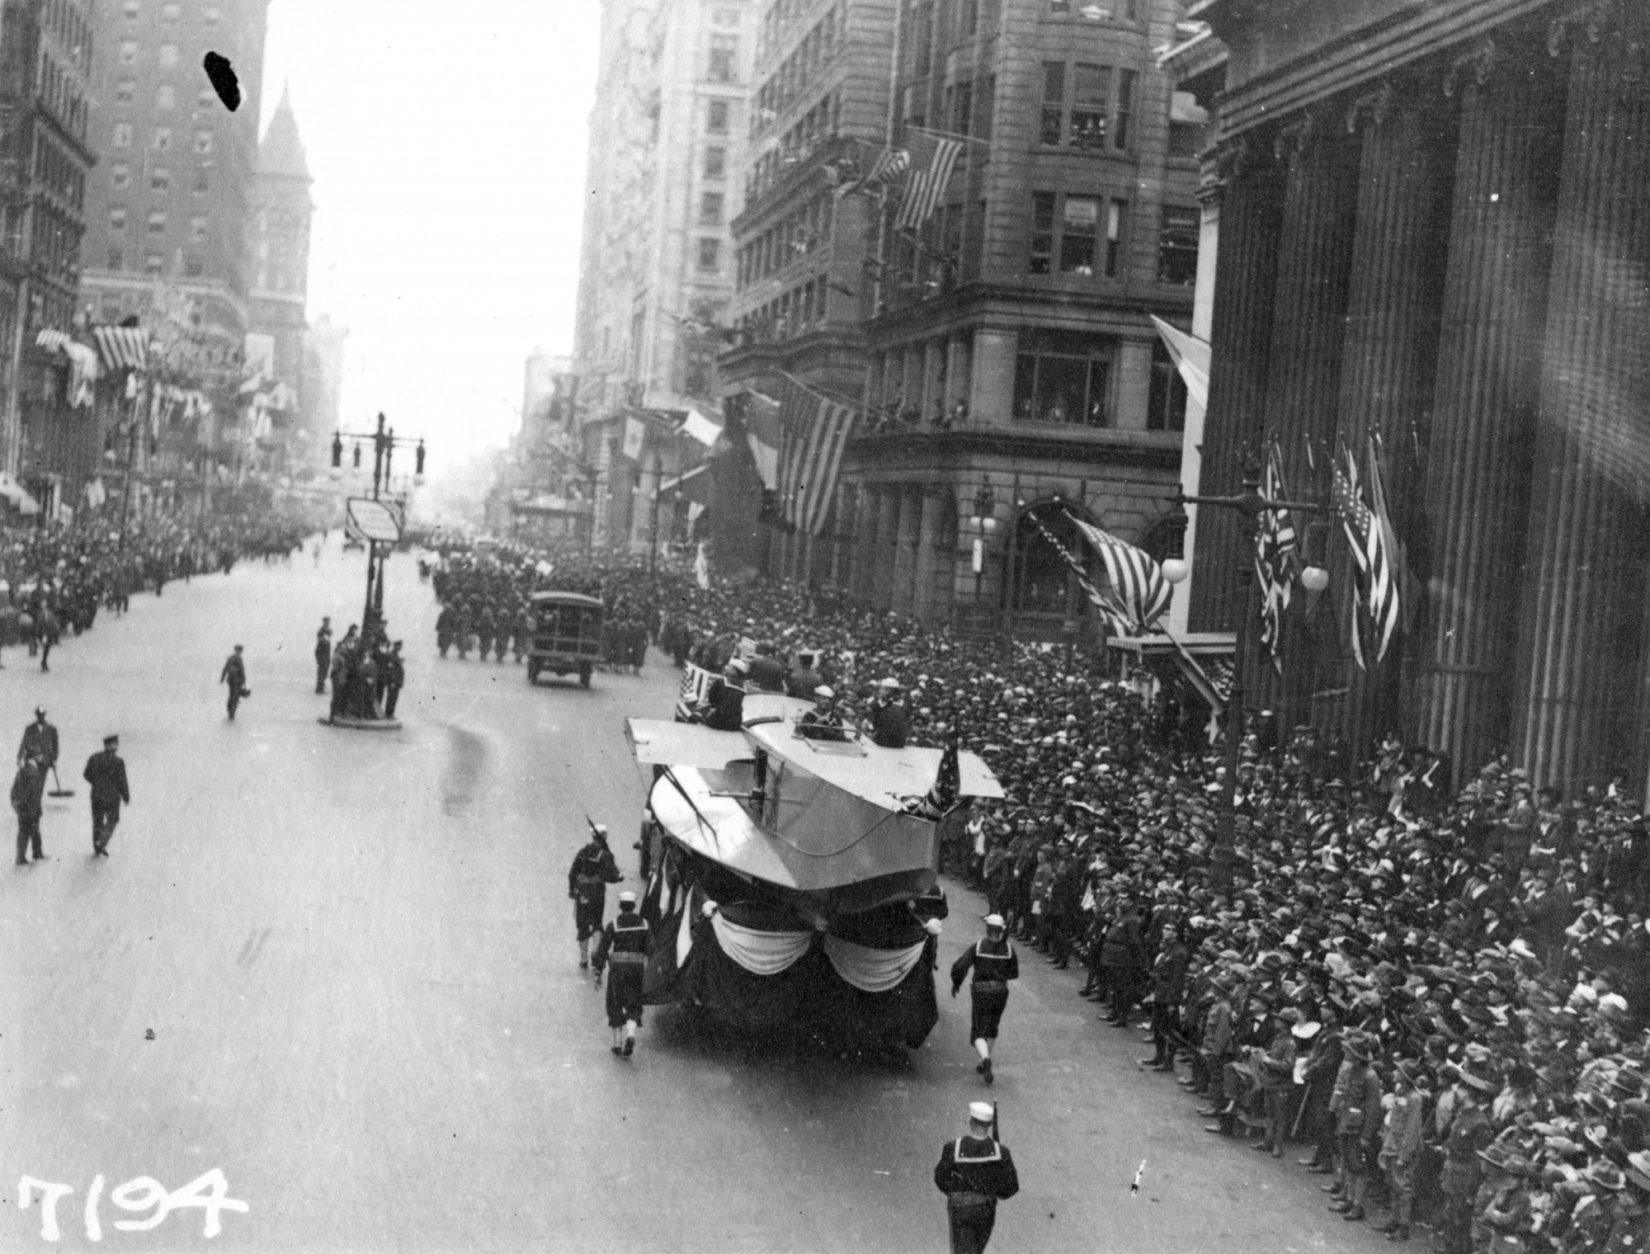 In this Sept. 28, 1918 photo provide by the U.S. Naval History and Heritage Command the Naval Aircraft Factory float moves south on Broad Street escorted by Sailors during the a parade meant to raise funds for the war effort, in Philadelphia. The Mutter Museum will present a parade on Saturday Sept. 28, featuring about 500 members of the public, four illuminated floats and an original piece of music as a sort of moving memorial to the 1918-1919 influenza pandemic. (U.S. Naval History and Heritage Command via AP)